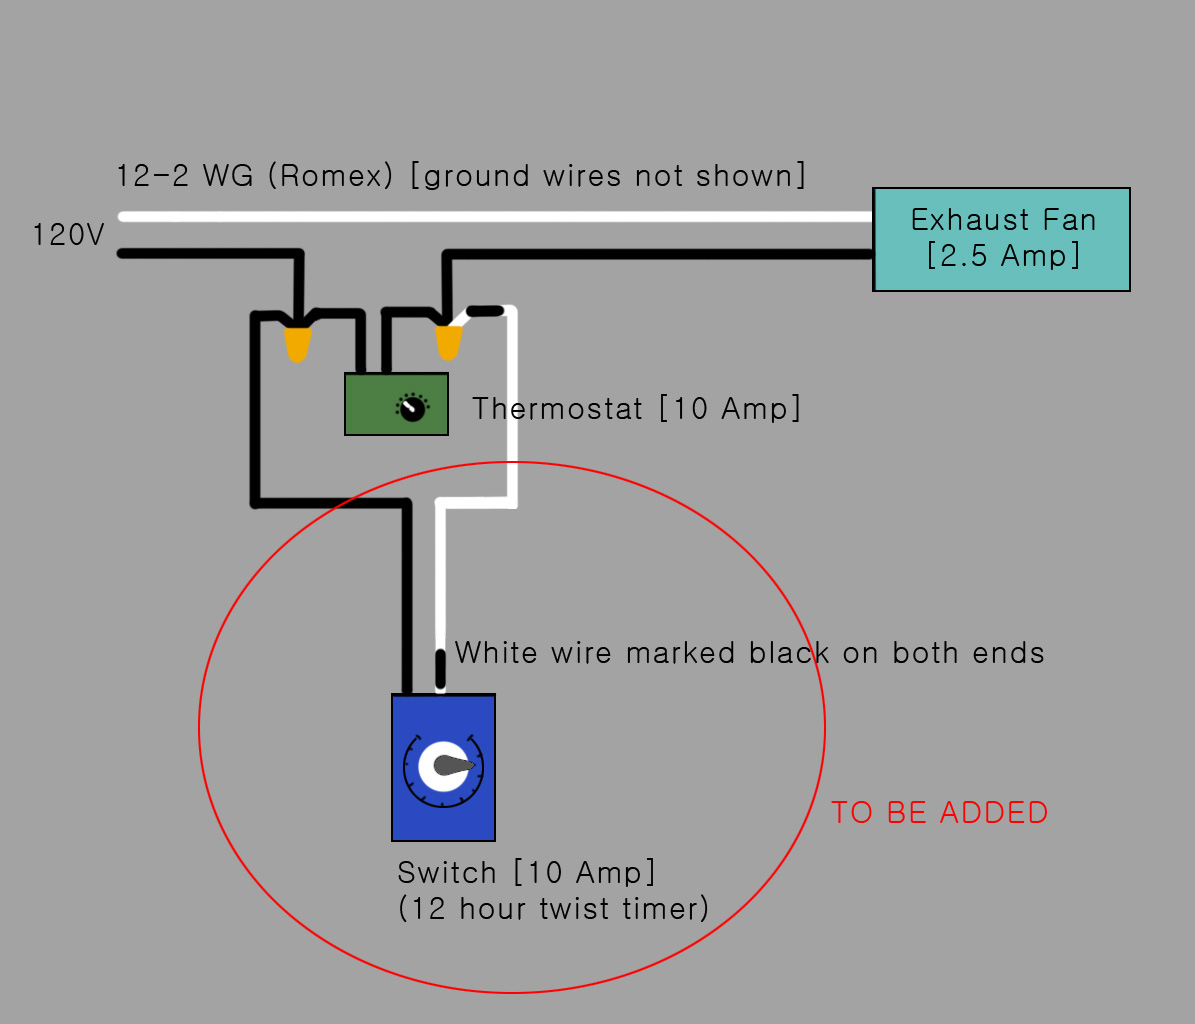 wiring diagram for whole house fan wiring diagrams lol attic exhaust fan wiring diagram 120v attic [ 1195 x 1024 Pixel ]